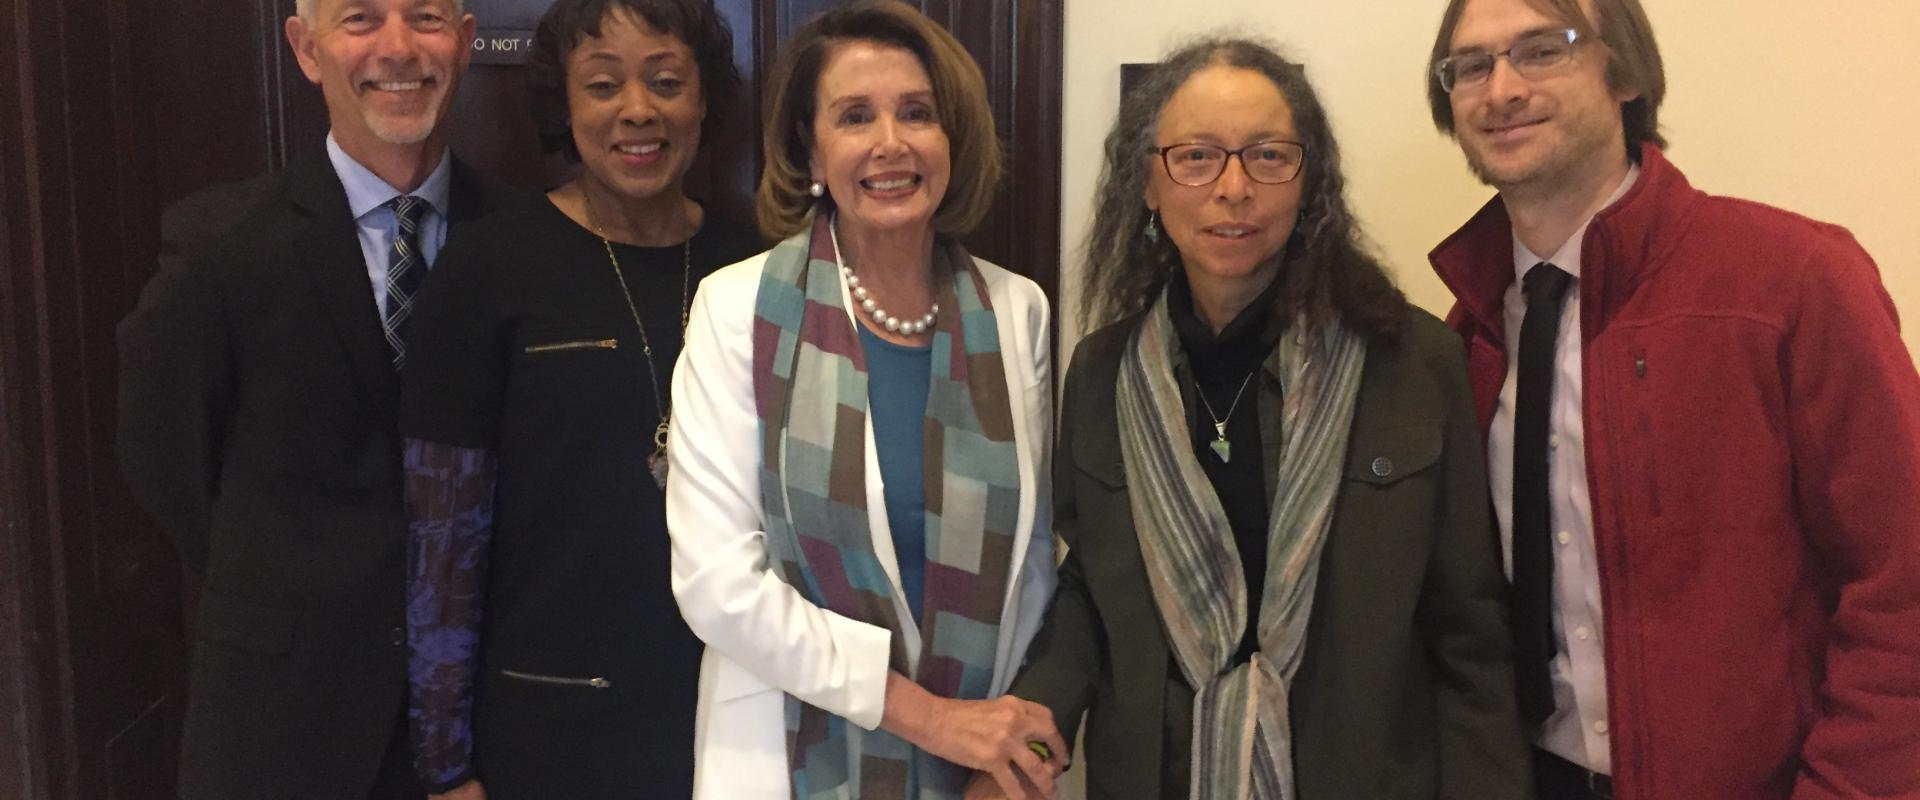 Congresswoman Nancy Pelosi meets with supporters of the arts from San Francisco and around the nation. While President's Trumps budget would eliminate the National Endowment for the Arts, Pelosi is fighting to preserve the NEA, as exposure to the arts hel